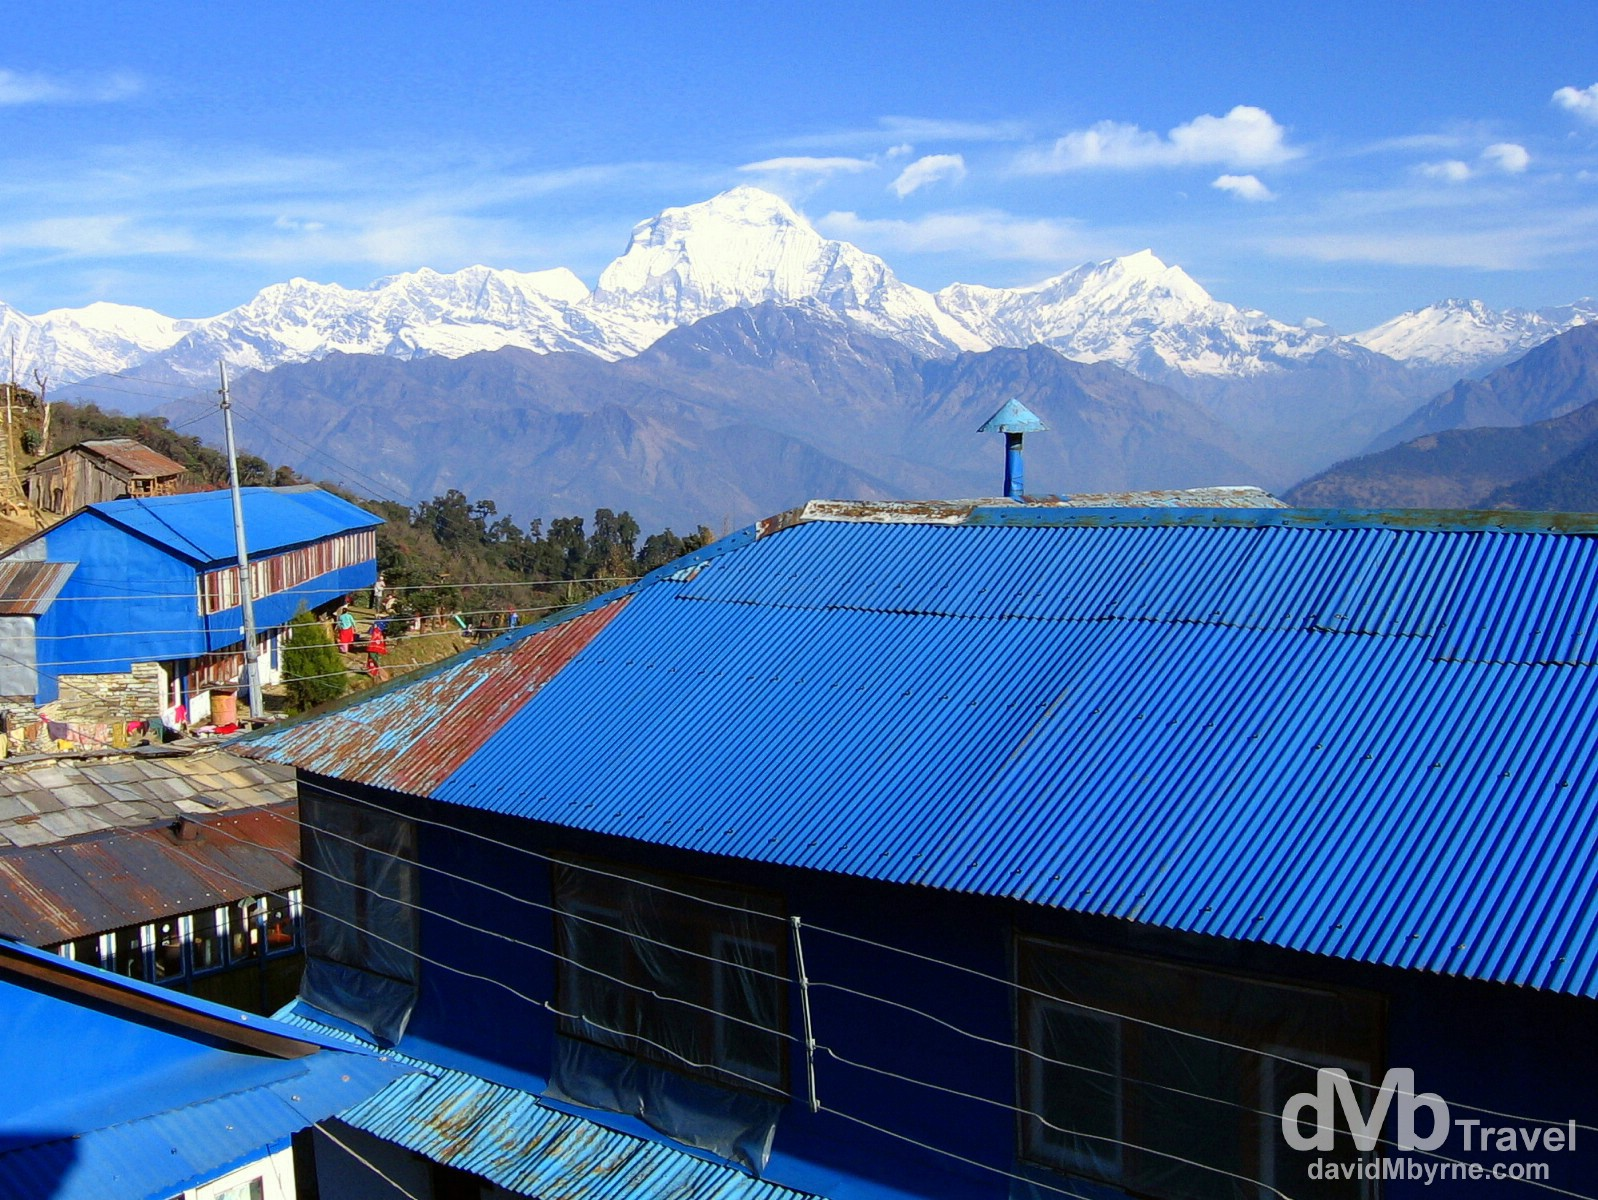 The distinctive blue galvanised roofs of the buildings of Ghorepani village, Nepal. The village sits 1,500ft, 450 metres below Poon Hill and the sight of Dhaulagiri (27,000ft, 8,167m) behind the village makes a spectacular backdrop. Ghorepani Village, Annapurna Conservation Area, Nepal. March 12th 2008.